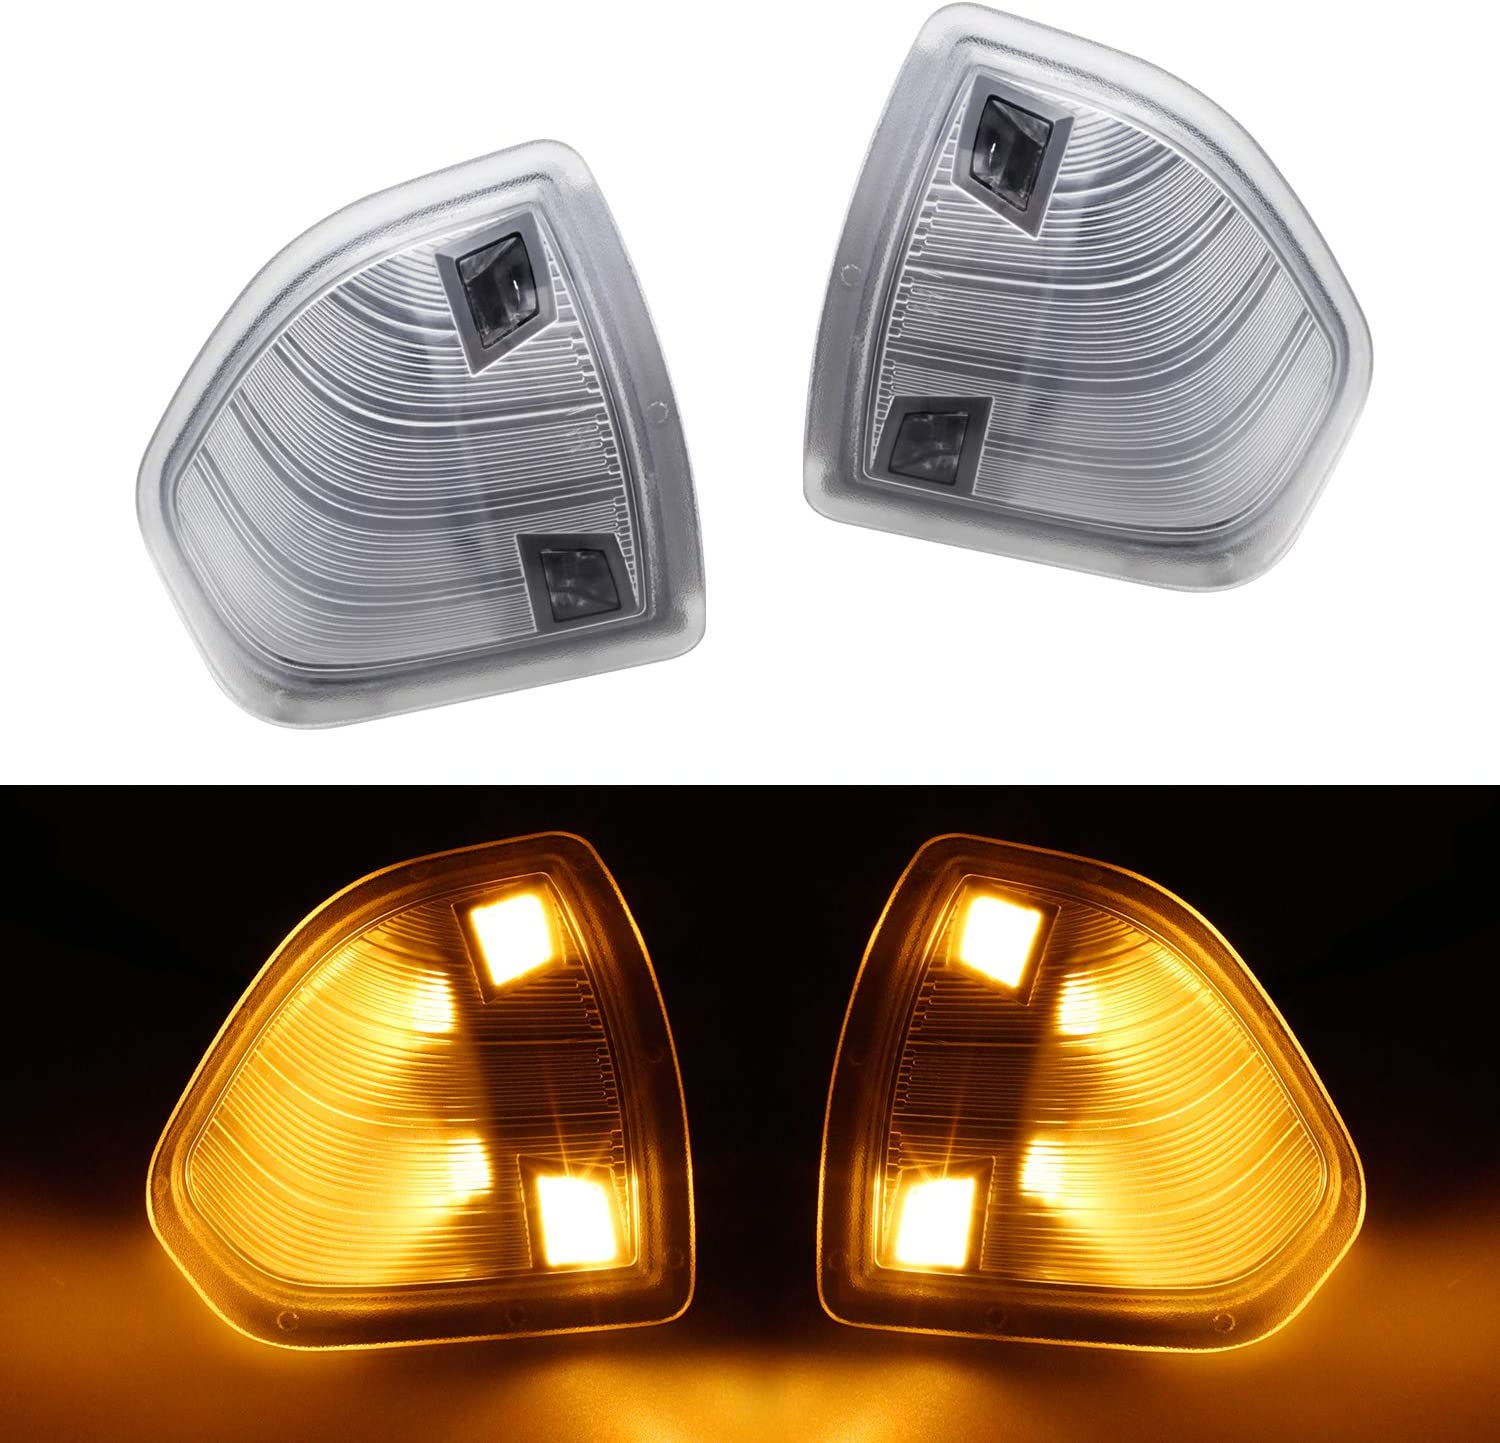 MFC Left /& Right Side Rear View Mirror Turn Signal Lamps Clear Cover Lens Fit For 2010-2018 Dodge Ram 1500 2500 3500 4500 5500 for 68302828AA /& 68302829AA